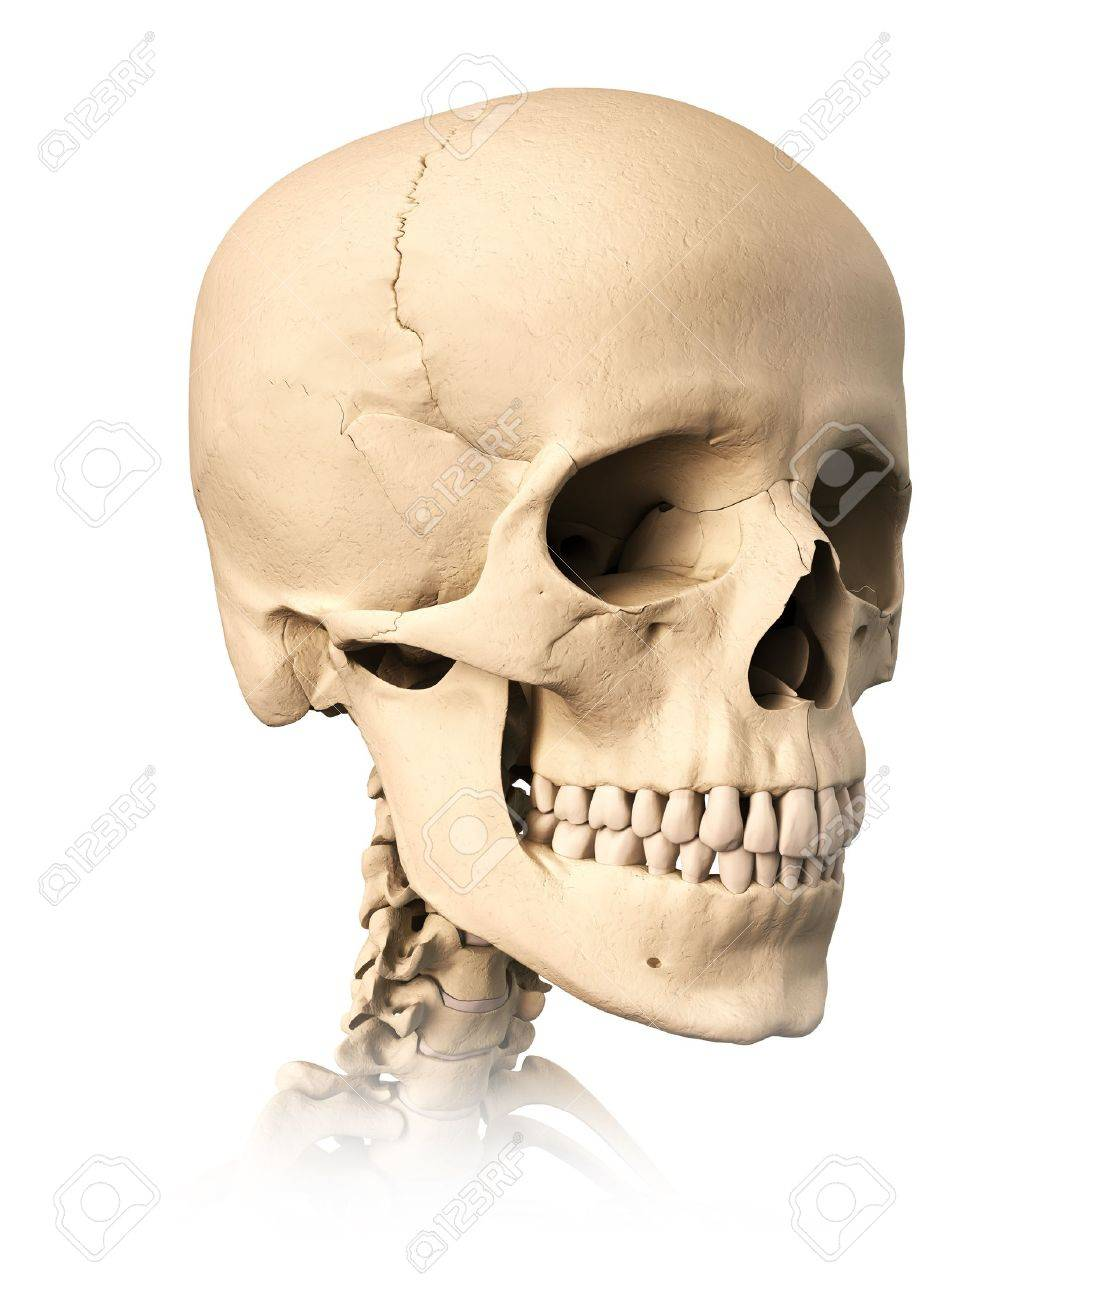 Very Detailed And Scientifically Correct Human Skull, On White ...